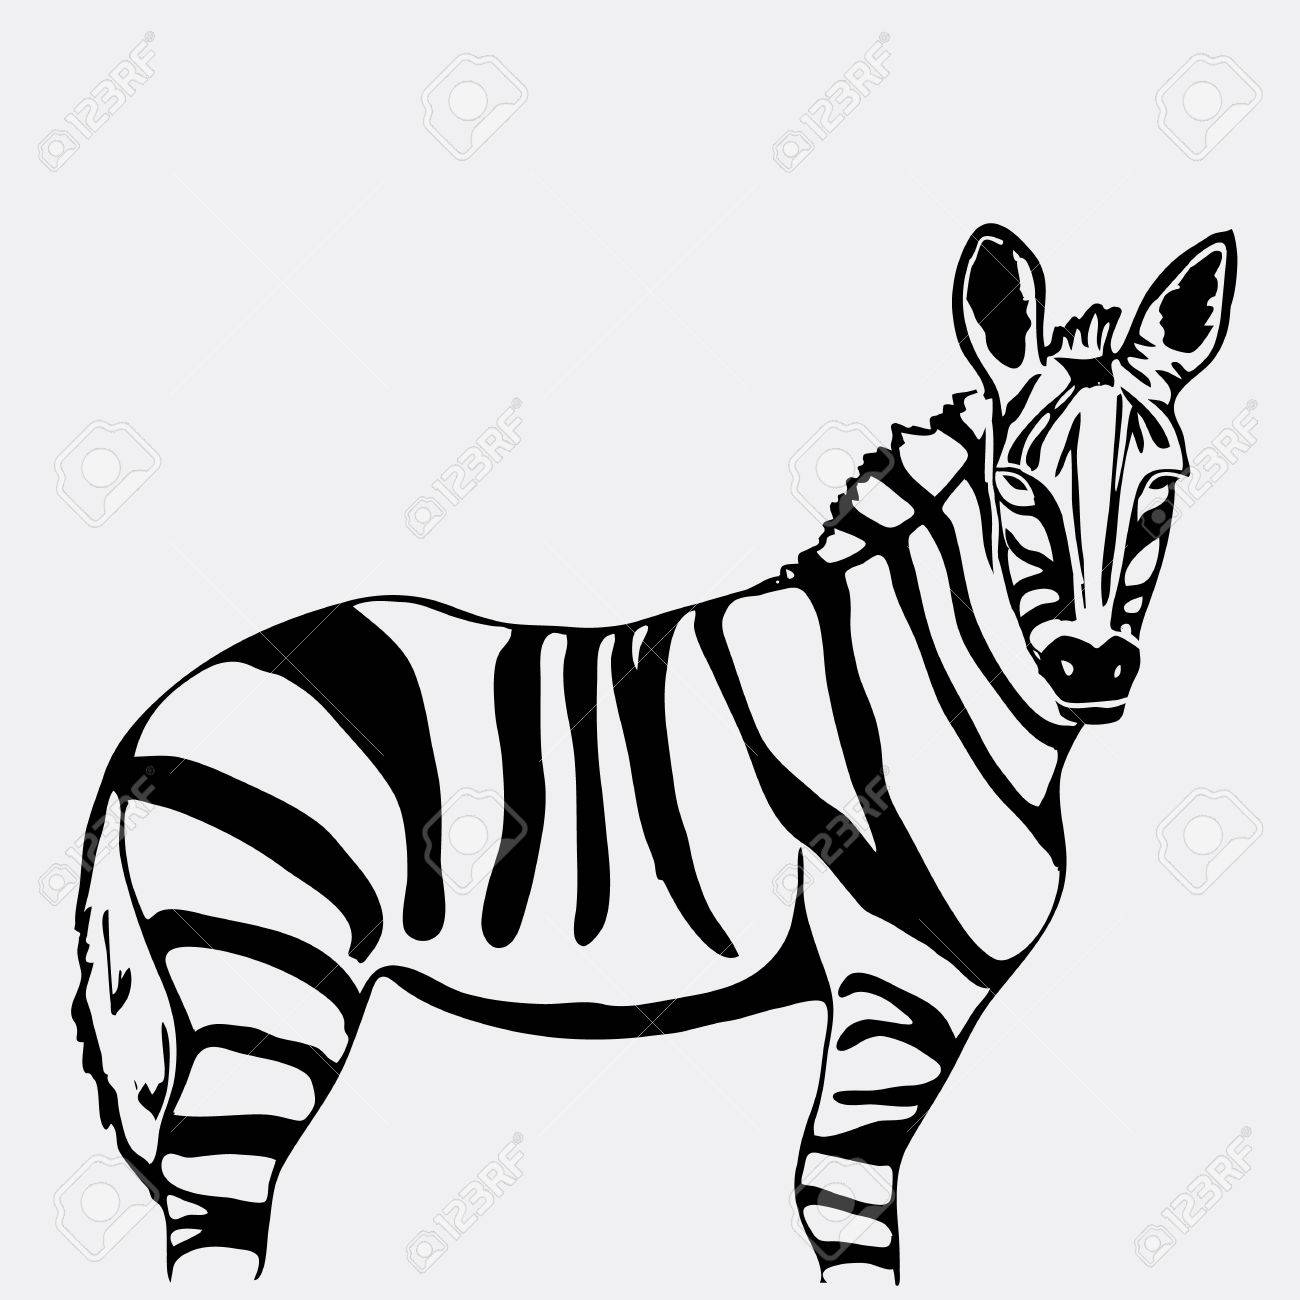 Hand drawn pencil graphics zebra engraving stencil style black and white